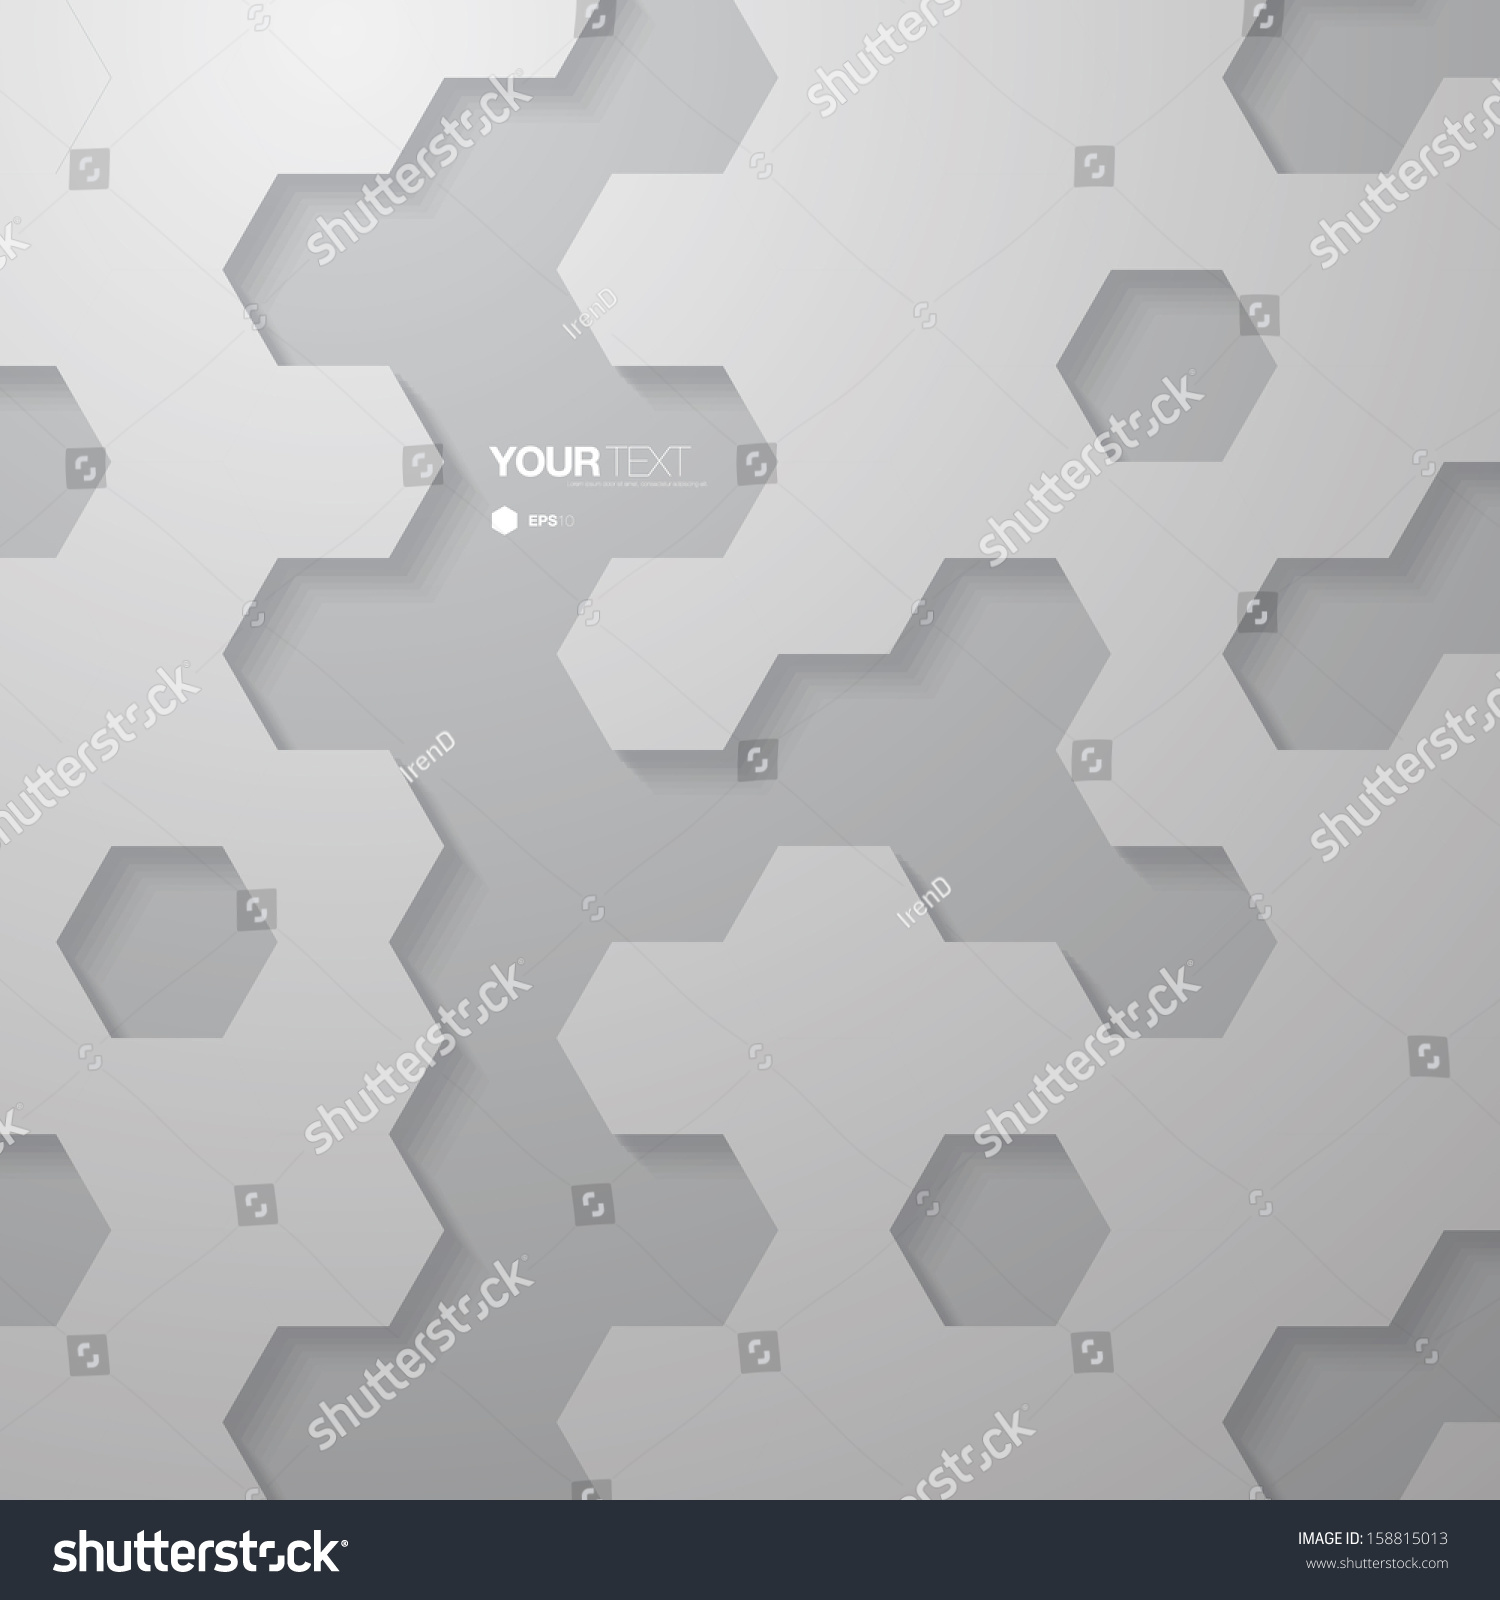 Abstract Grayscale Geometric Hexagon Pattern Design Stock Vector ...